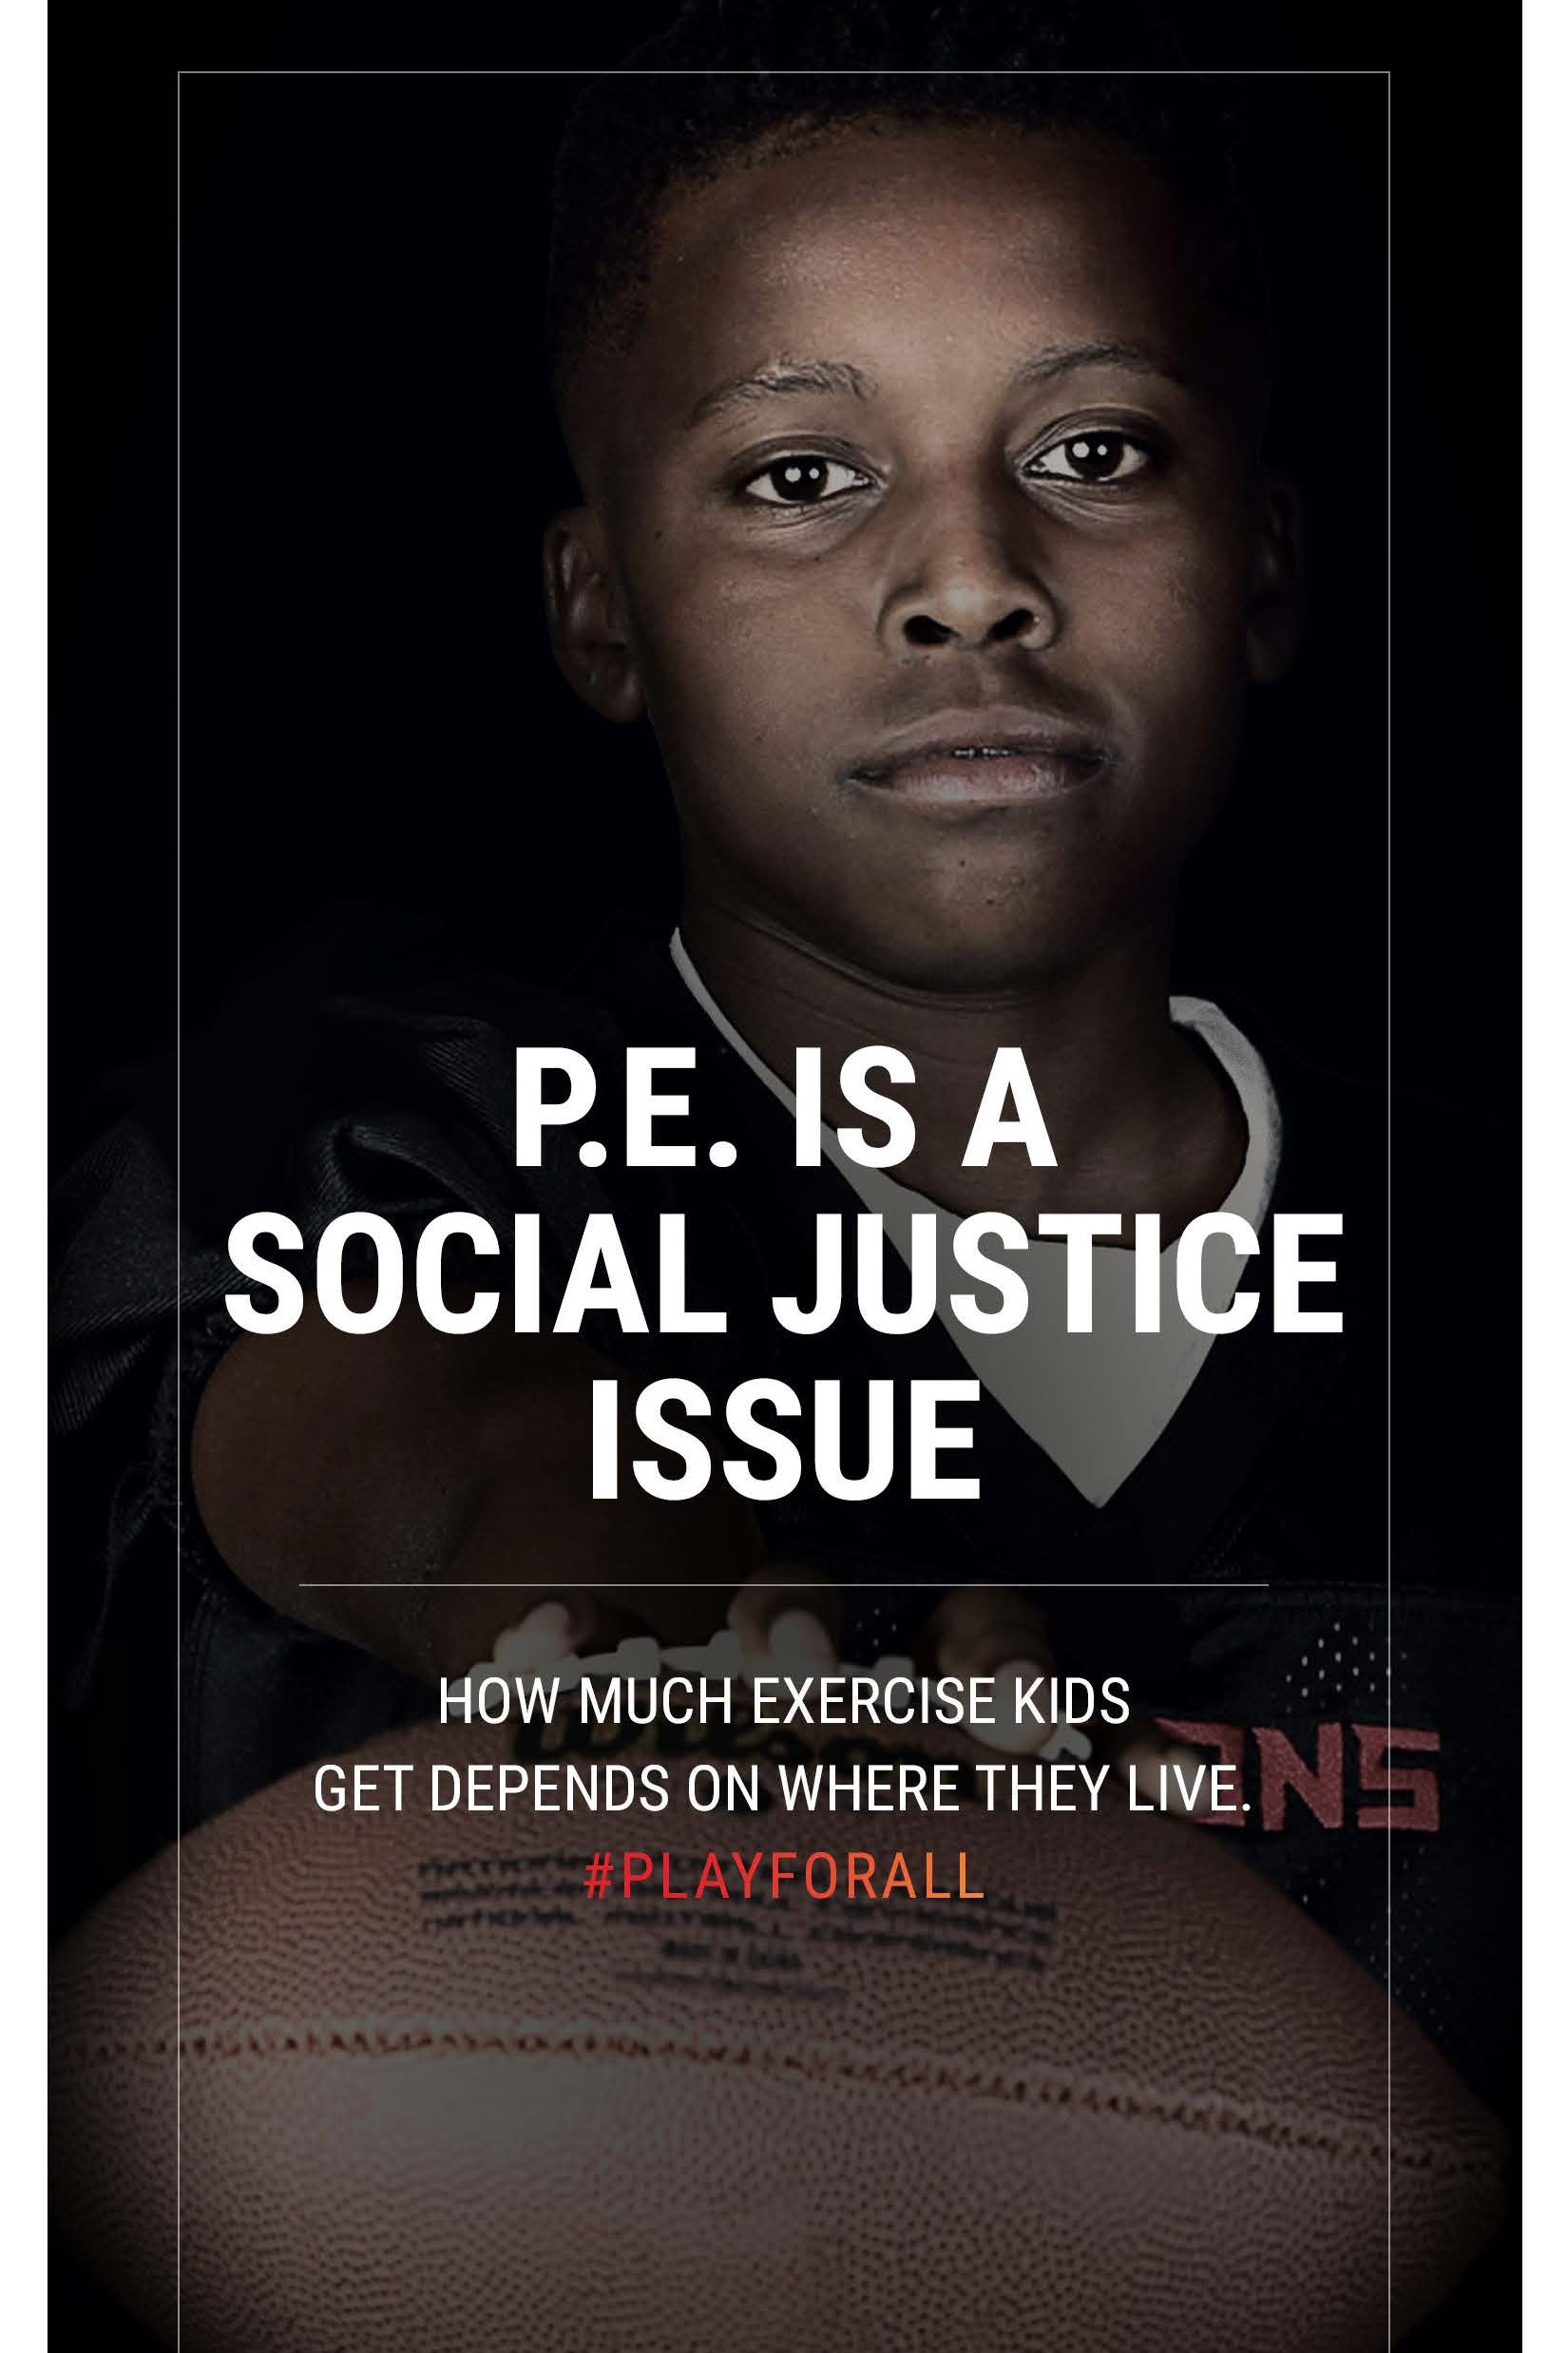 P.E.-Is-A-Social-Justice-Issue-9-24-17-website